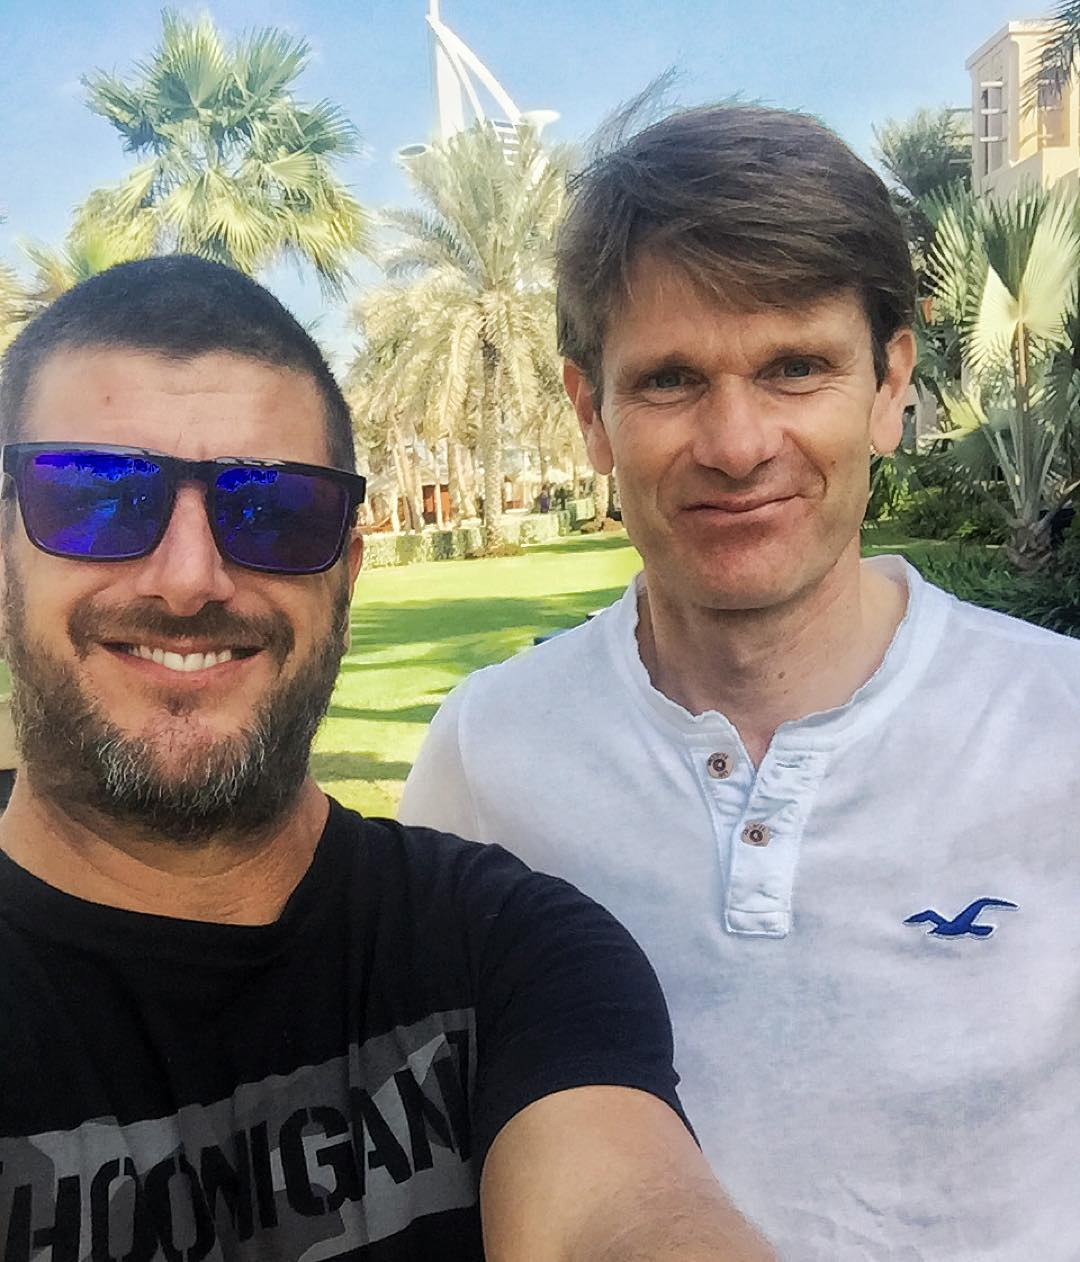 Had a fun surprise breakfast guest this morning: multi-time WRC champ and one of the funniest dudes in rally, Mr. Marcus Gronholm. I have always enjoyed racing and hanging out with this flying Finn. Great to run into him here in Dubai. #flyingfinn...